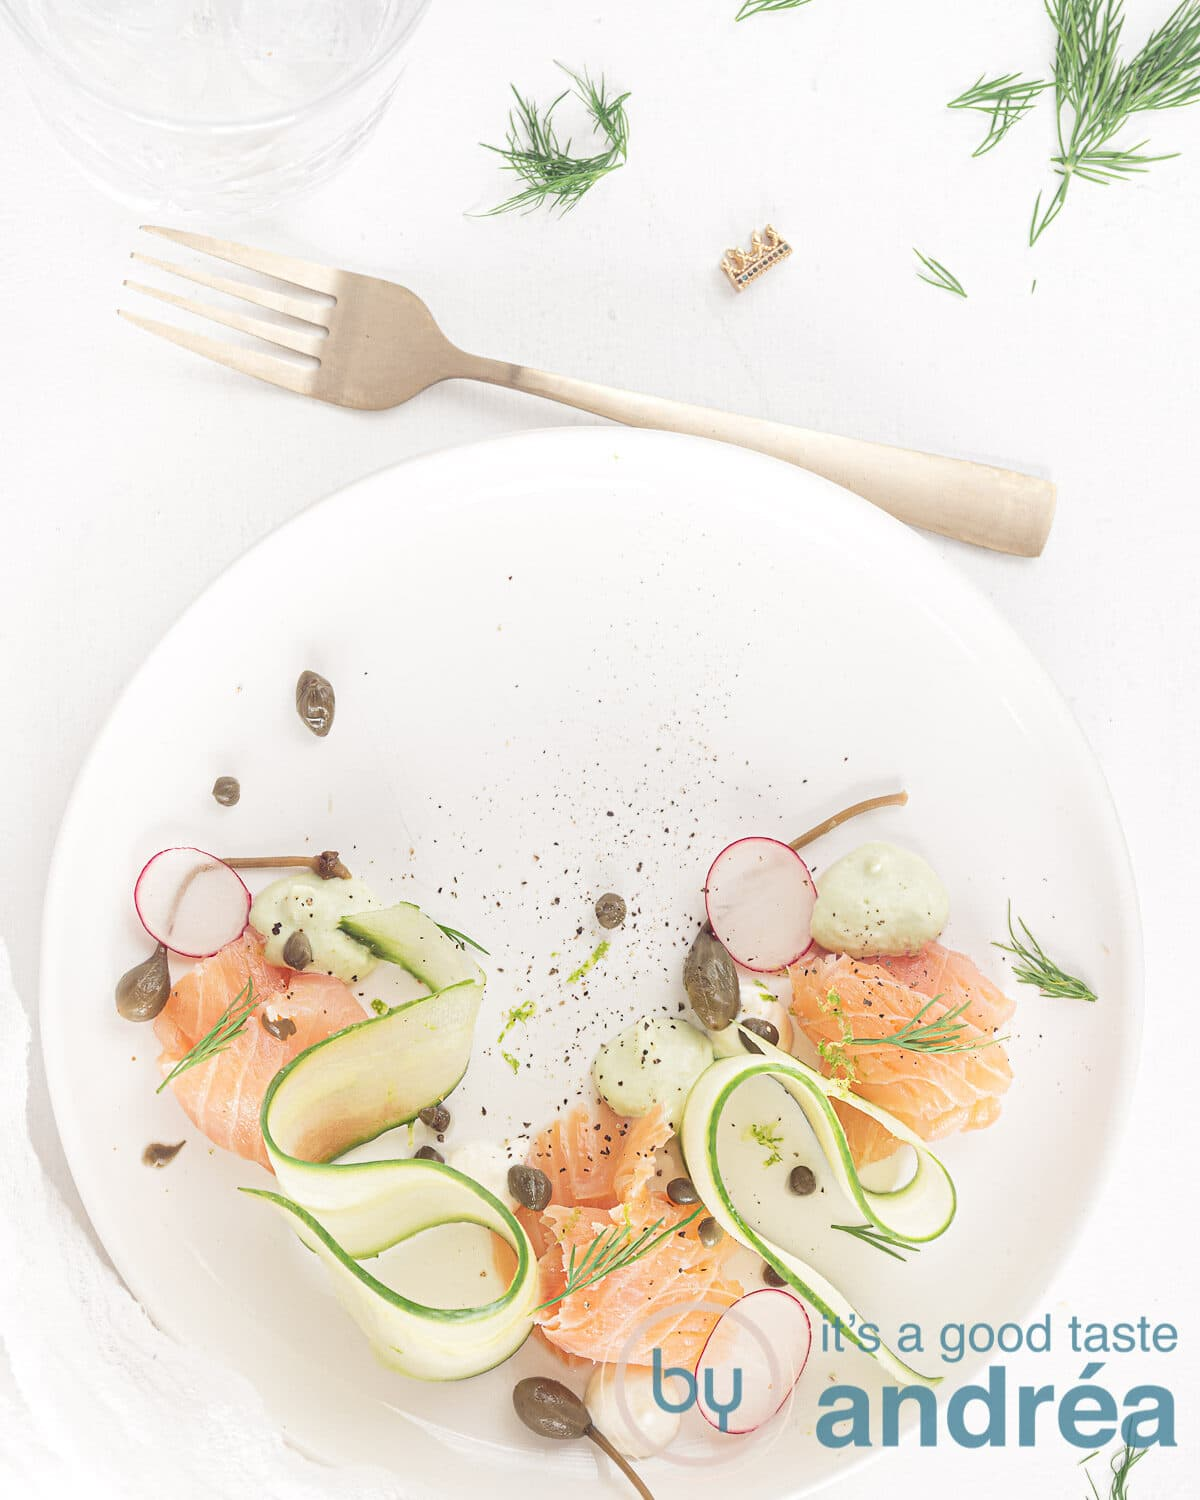 a plate with smoked salmon, cucumber ribbons and two creams a fork and some dill spread around